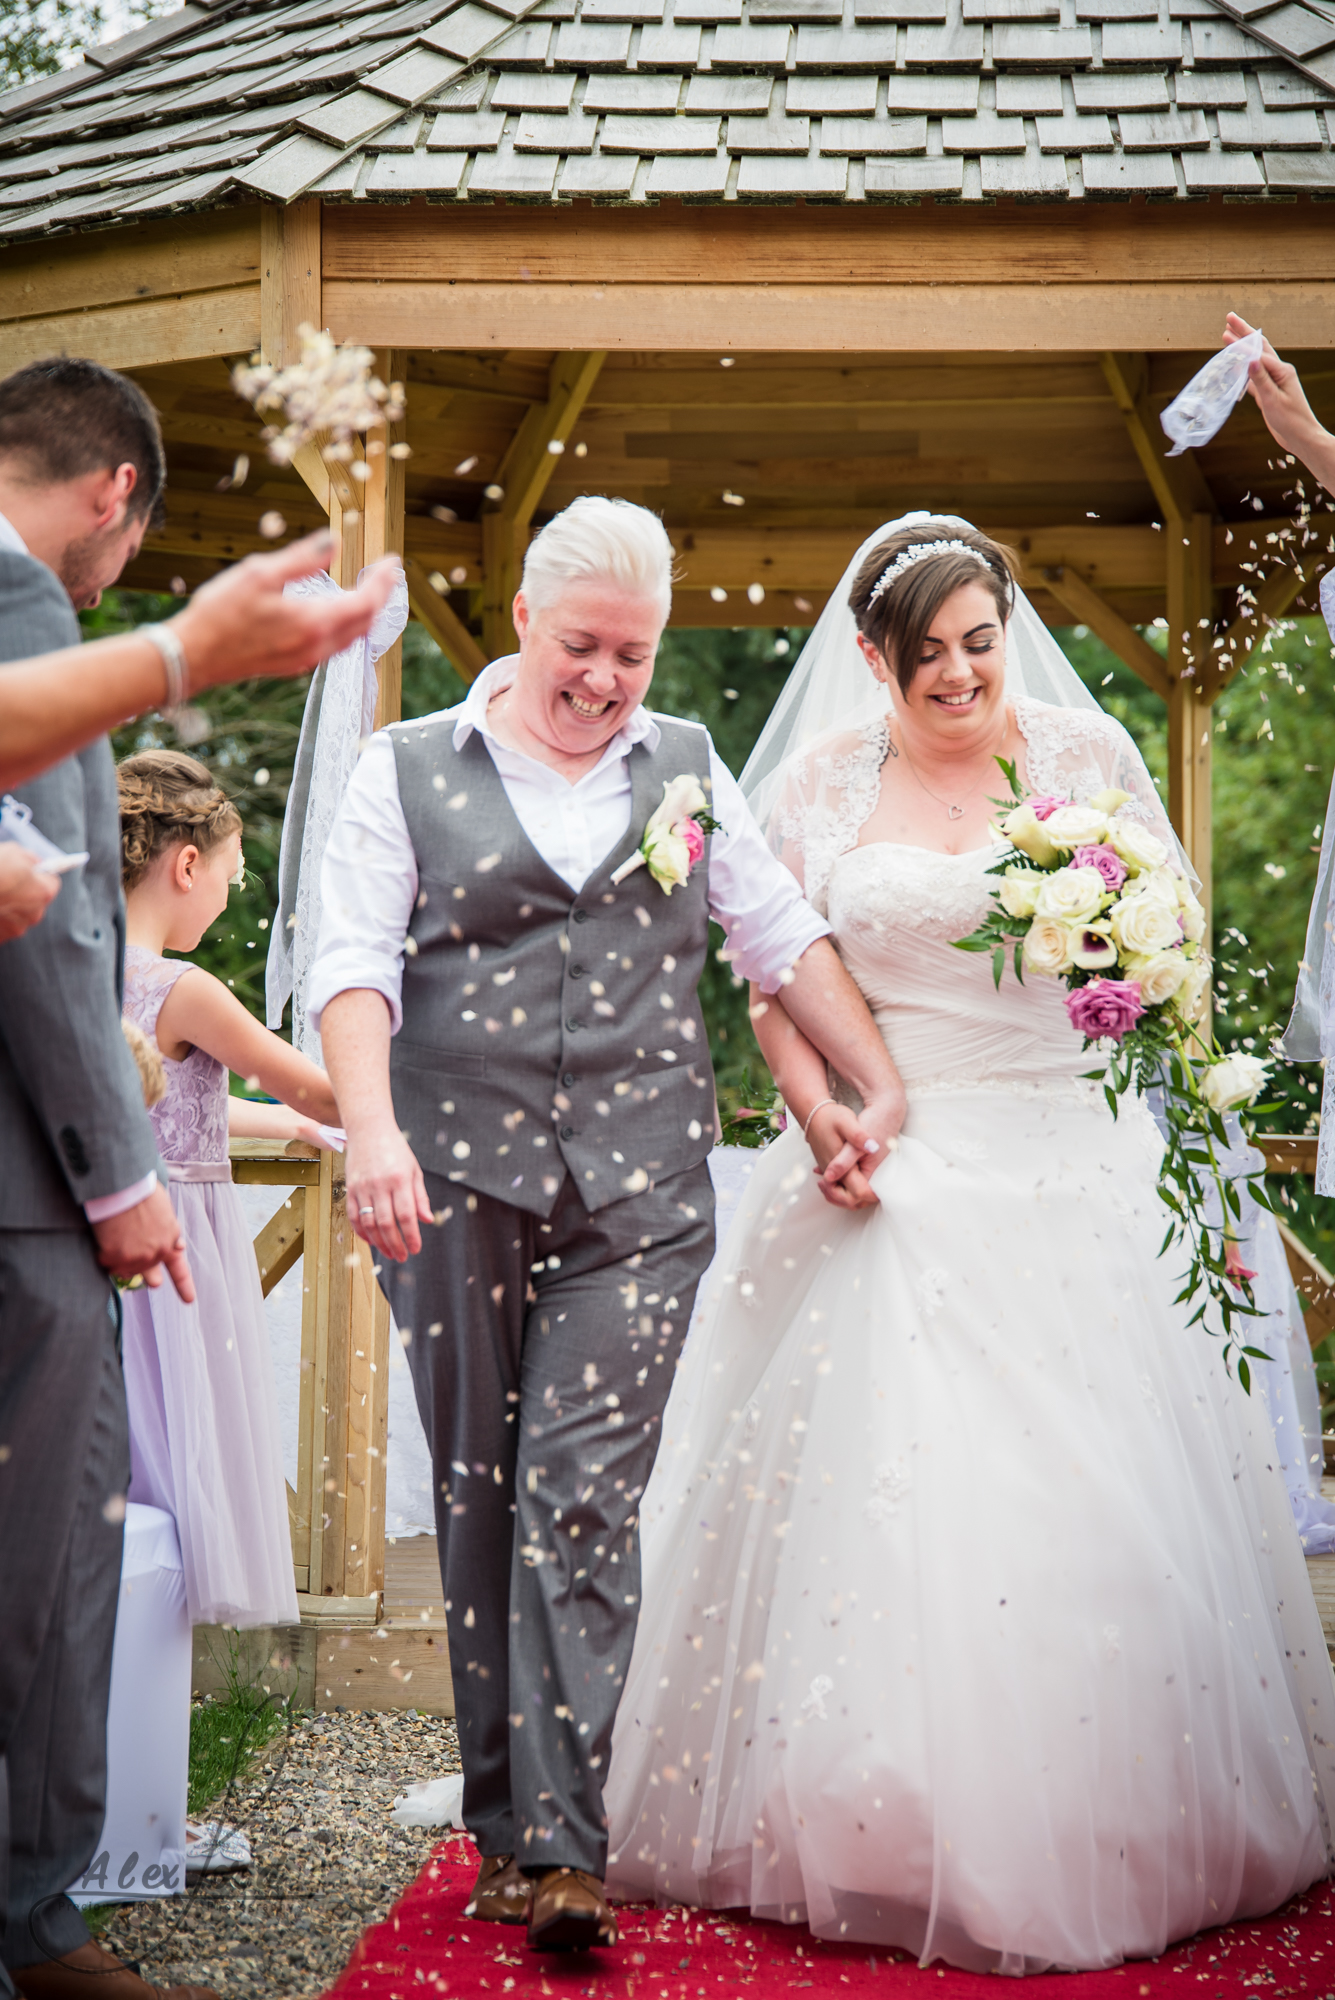 the bride and bride walk down the aisle together getting covered in confetti